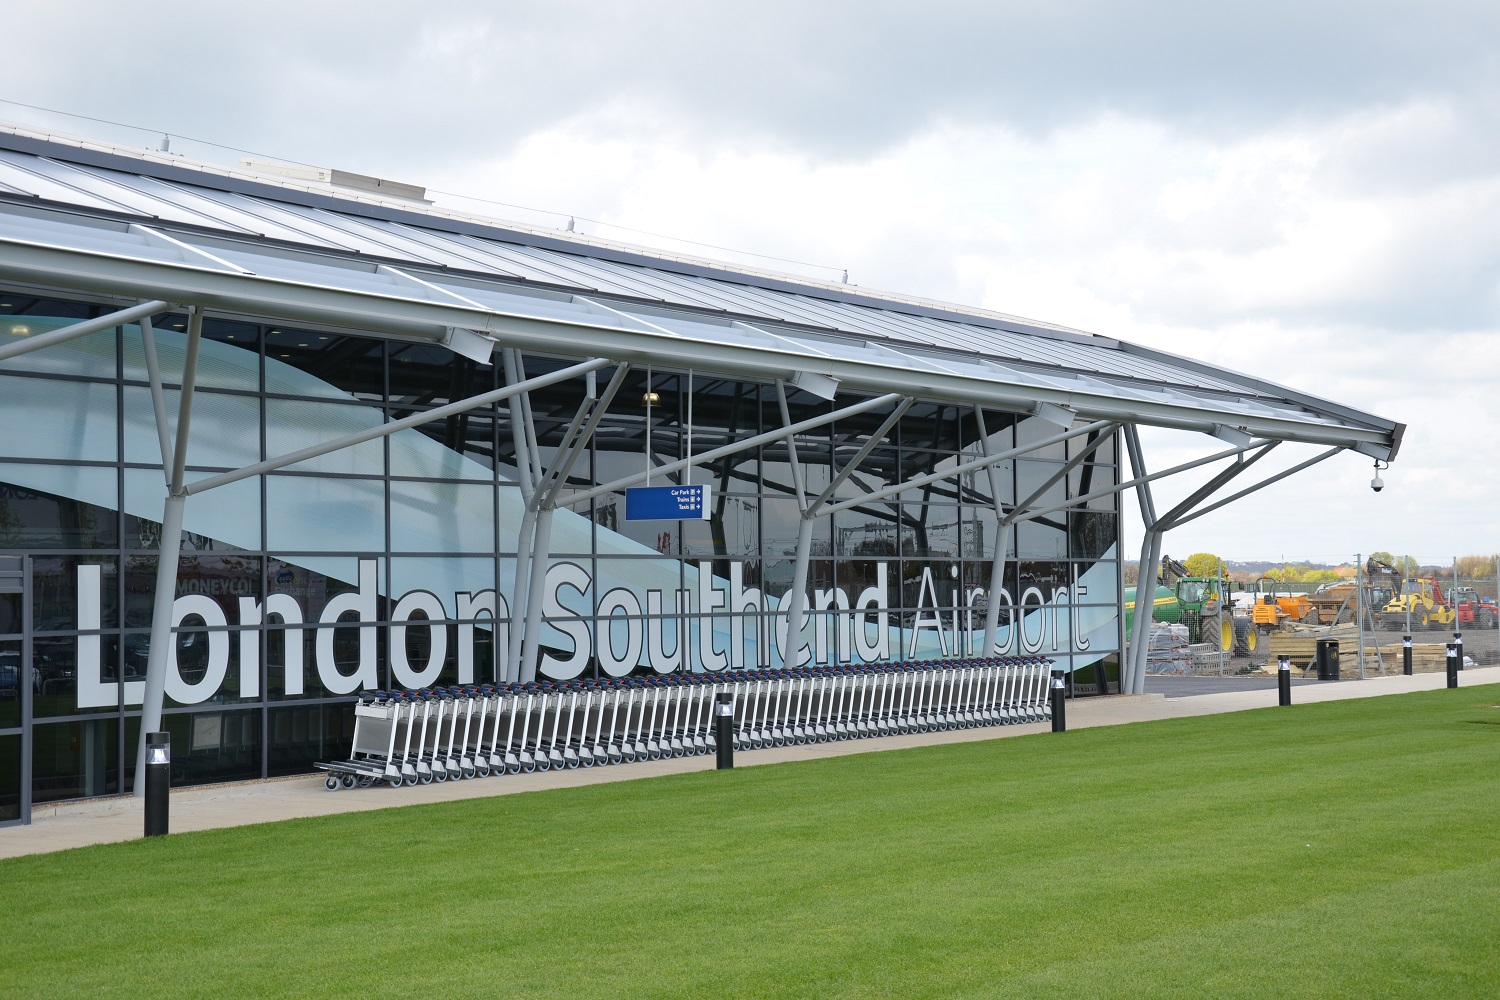 Image of the exterior of Southend Airport.